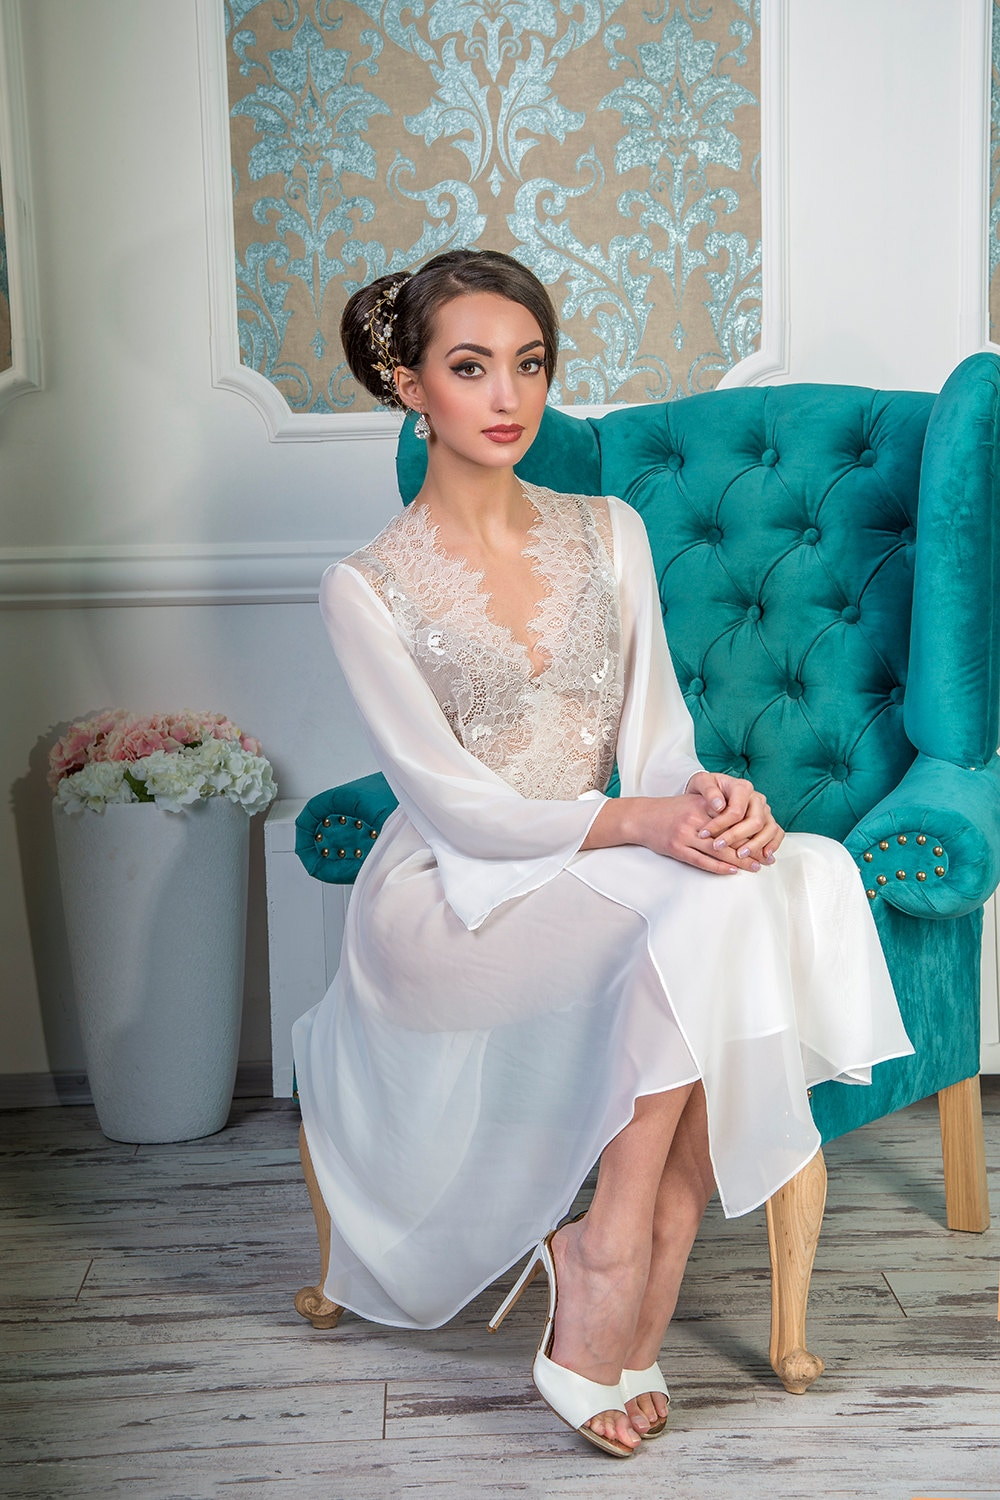 Magnificent Bridal Gown Lingerie Image Collection - Wedding Dress ...